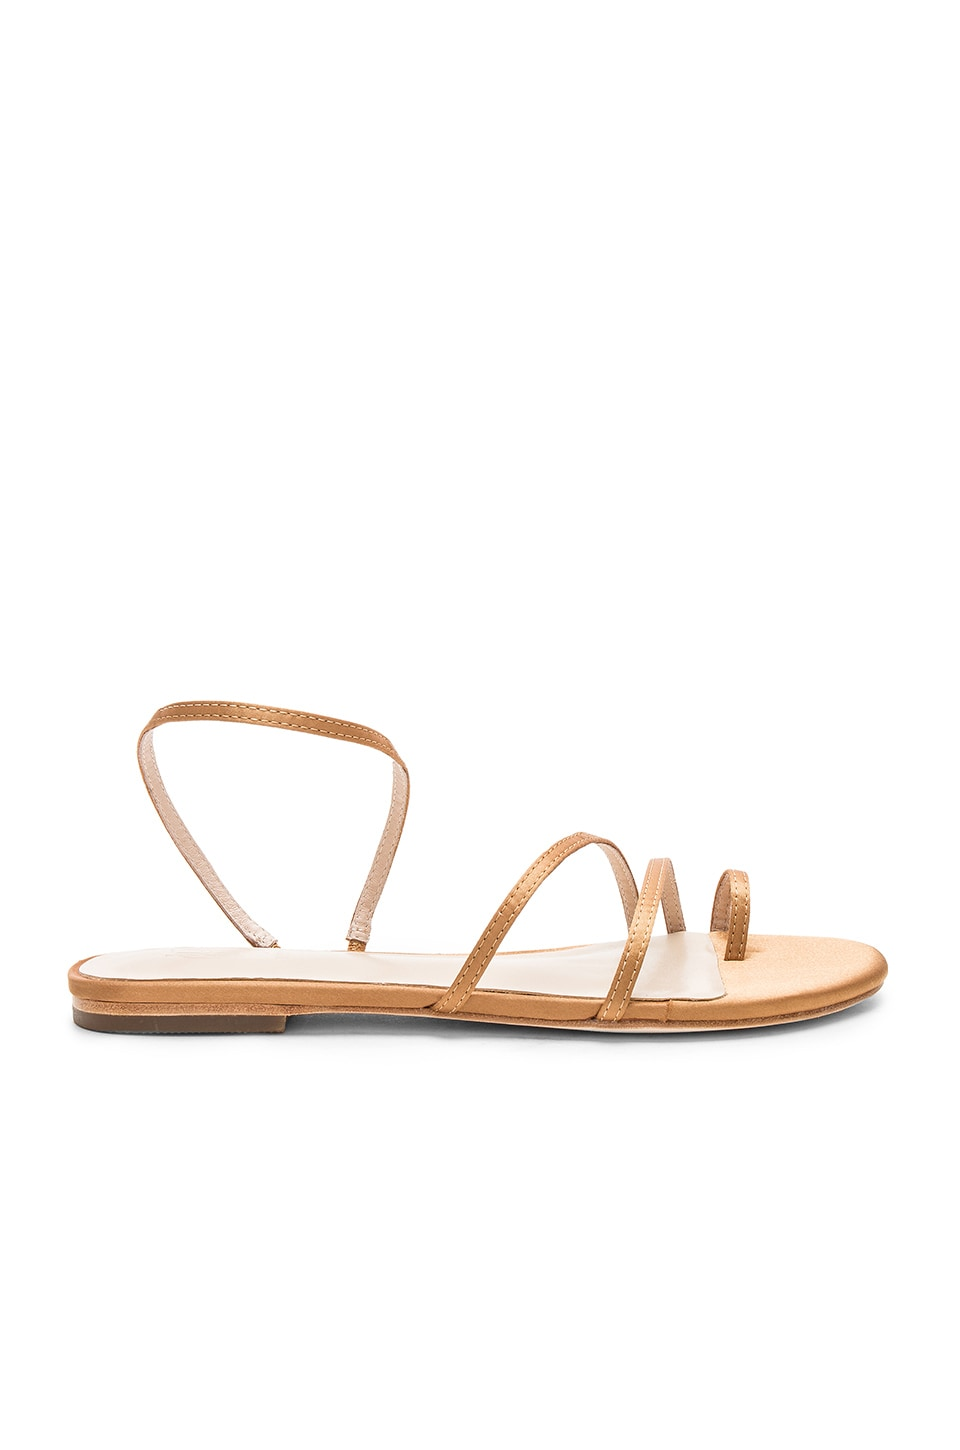 RAYE x House Of Harlow 1960 Isolla Sandal in Topaz